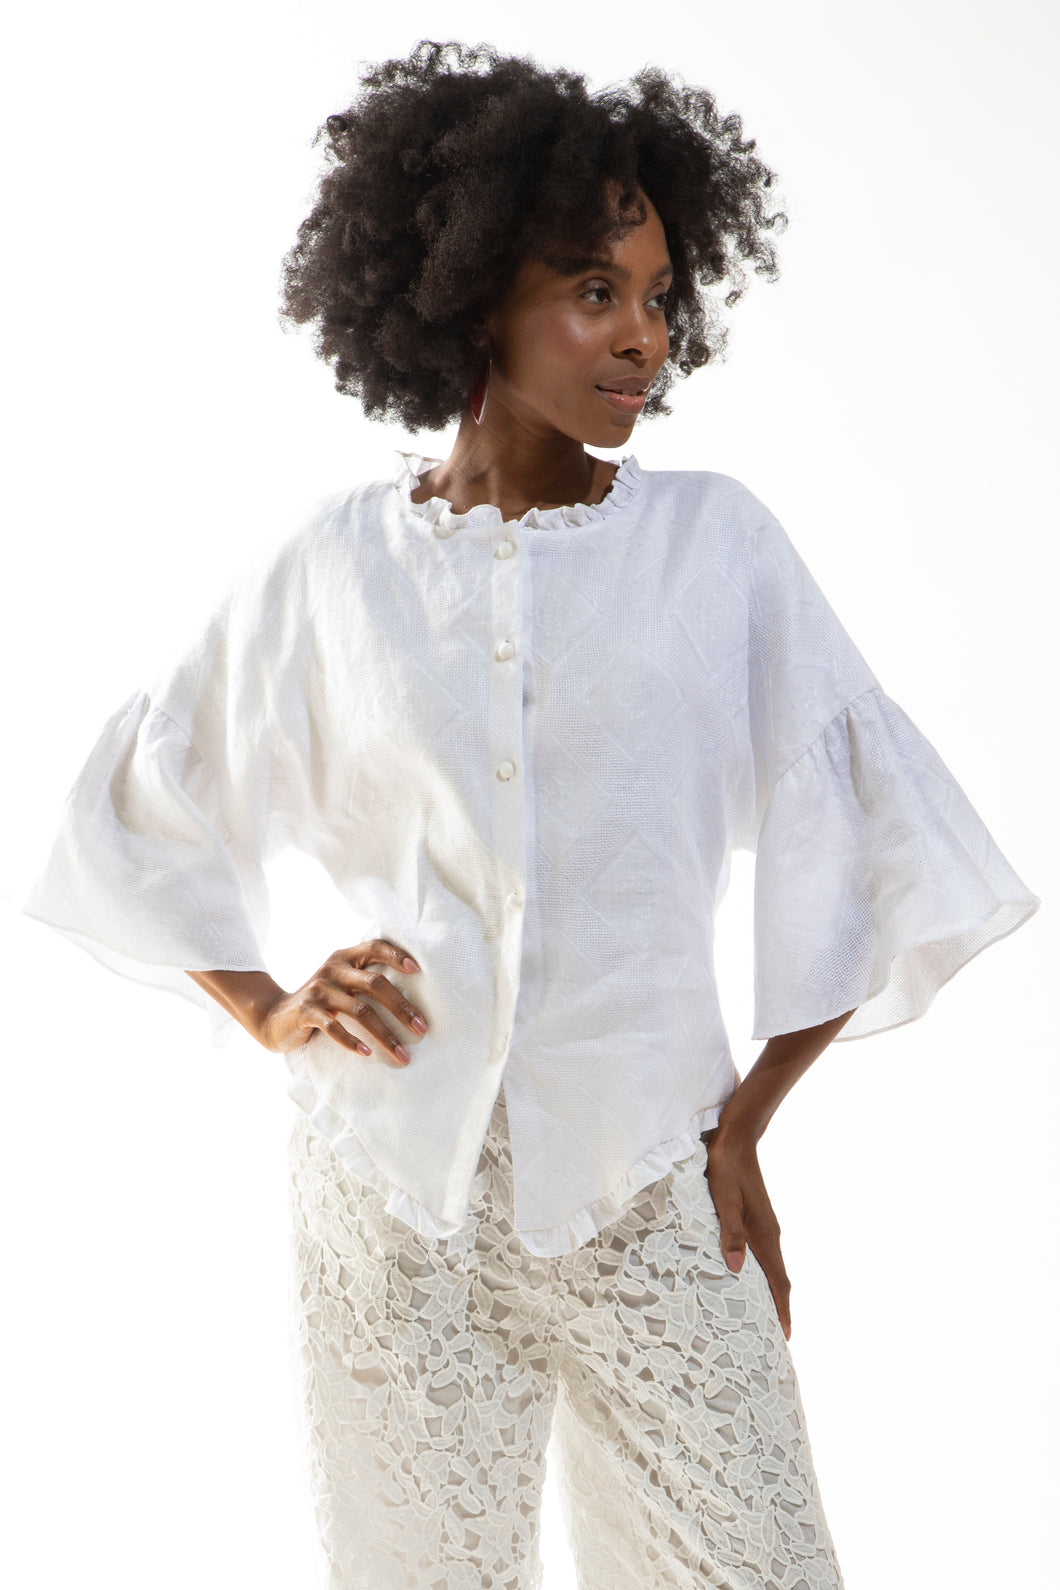 Made in NYC: Jacket with Ruffle Detail (White) Style #217